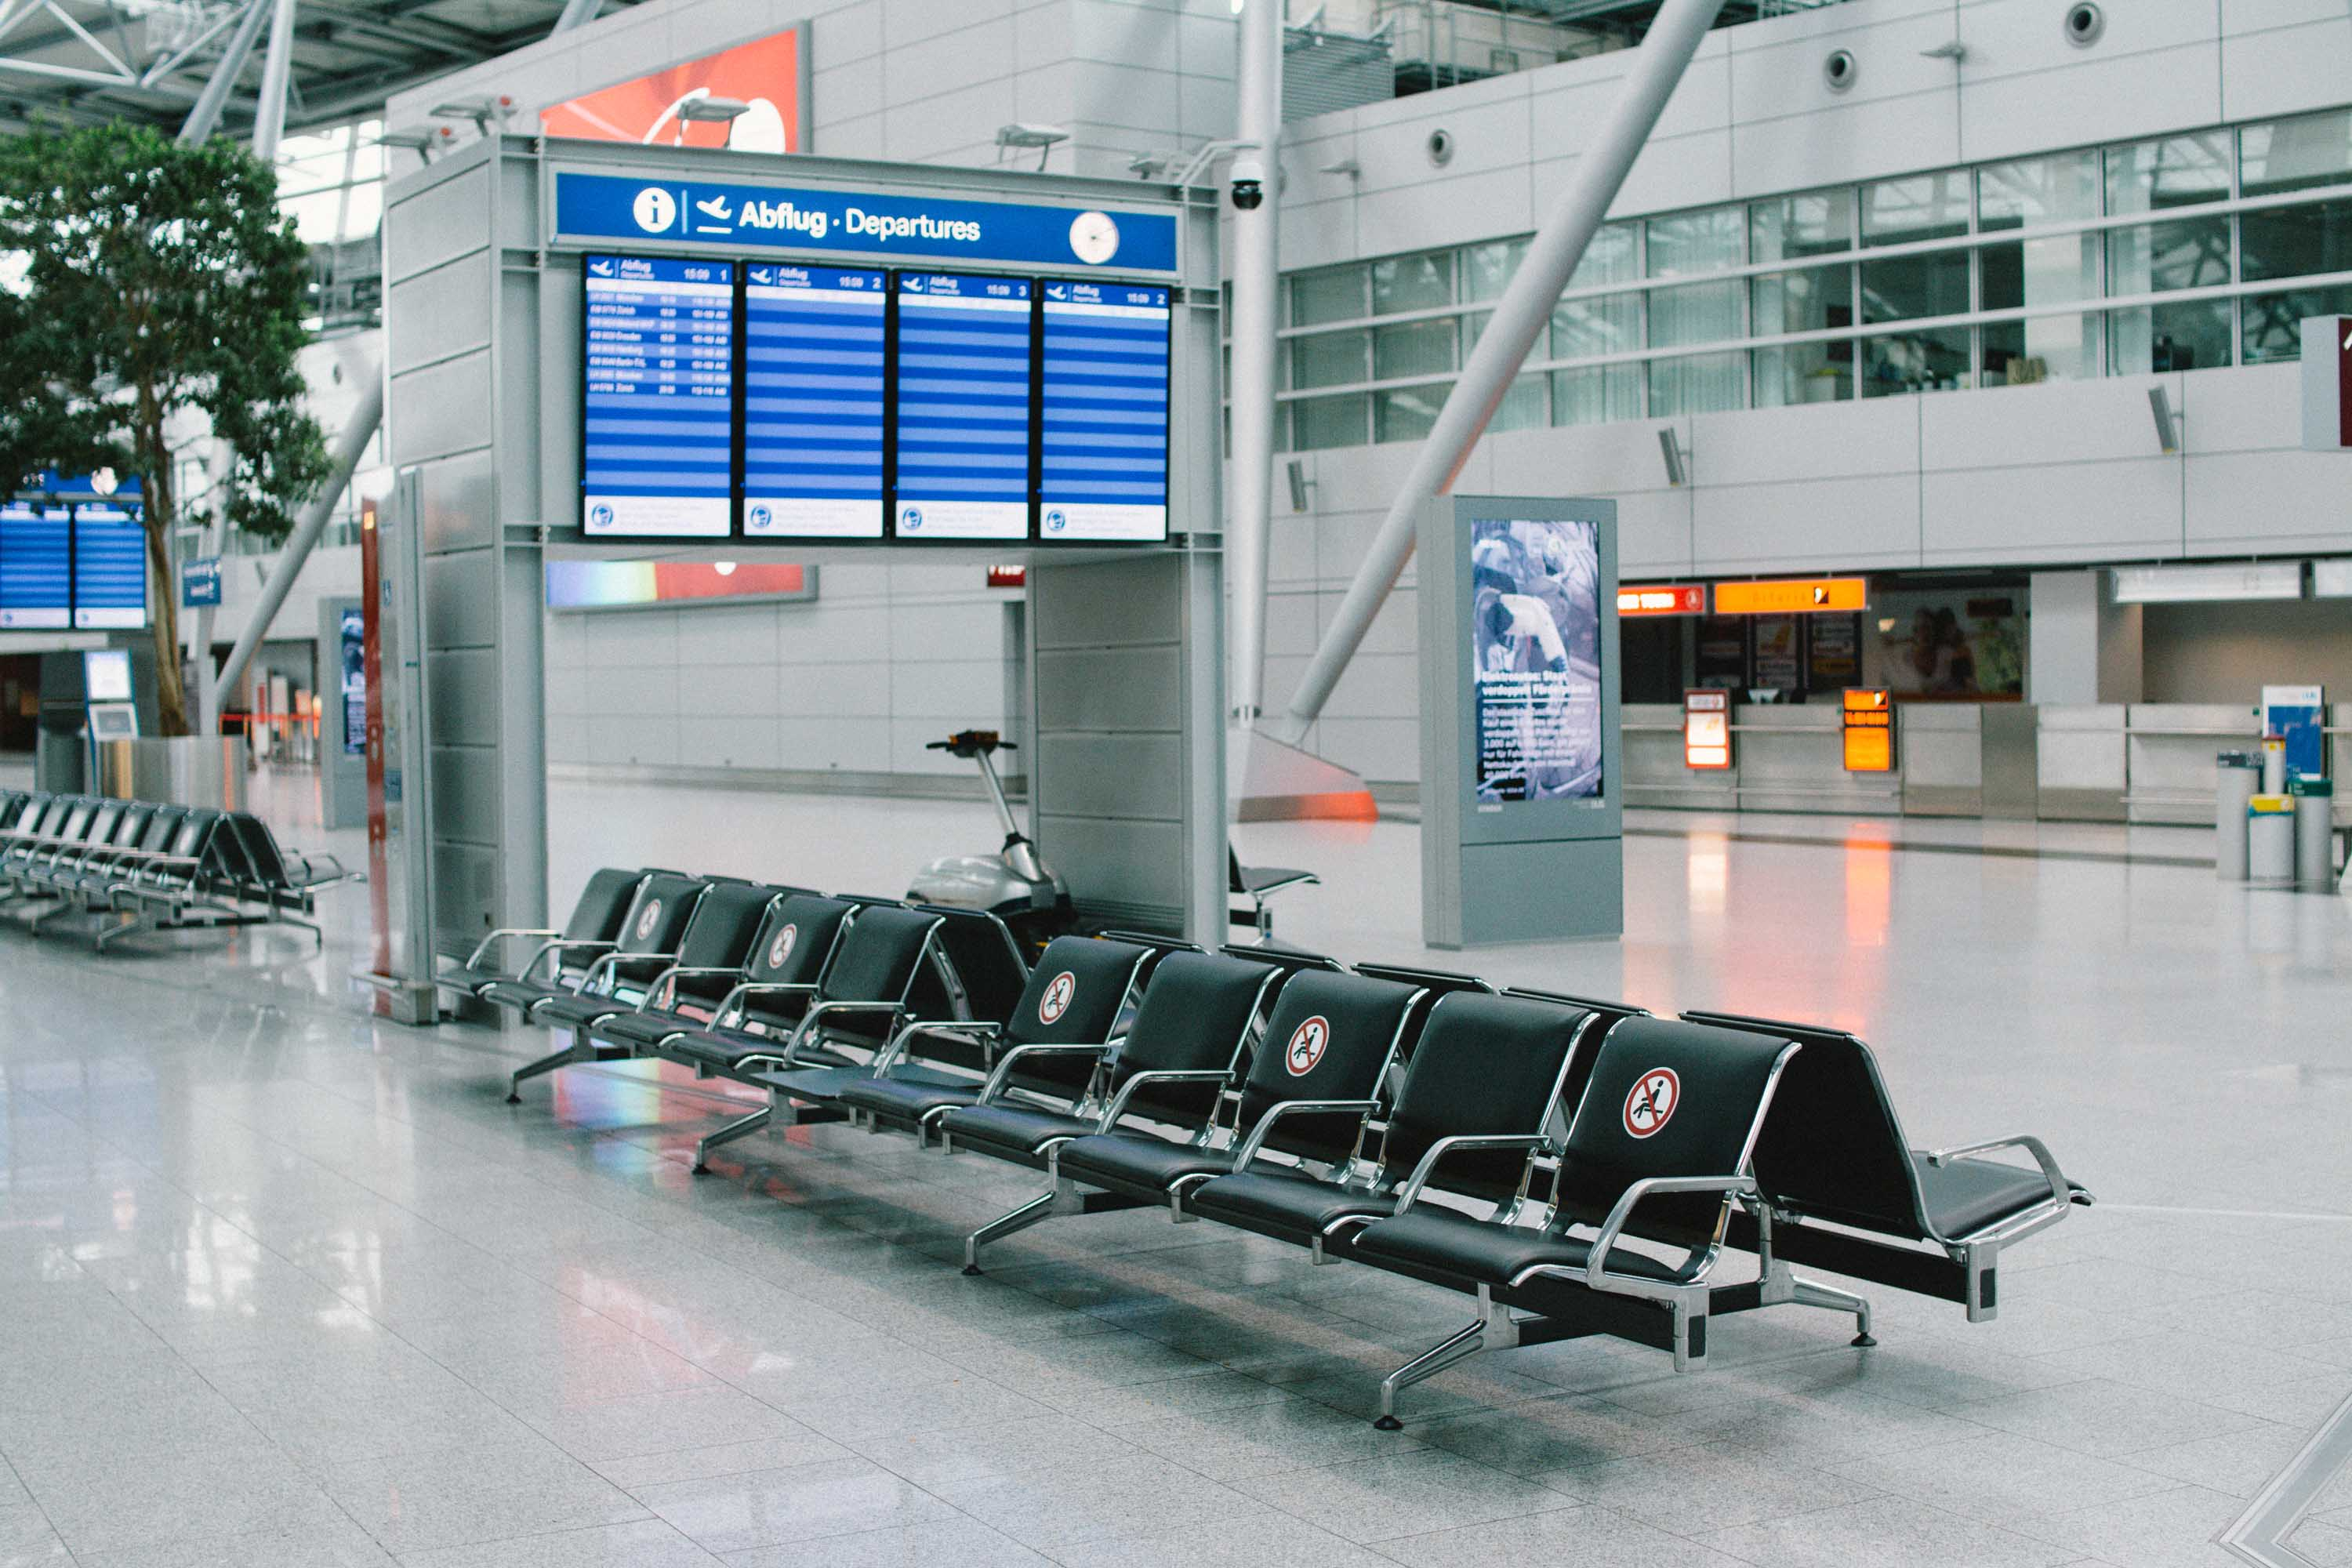 A nearly deserted departure area is seen at an airport in Duesseldorf, Germany, on June 5.